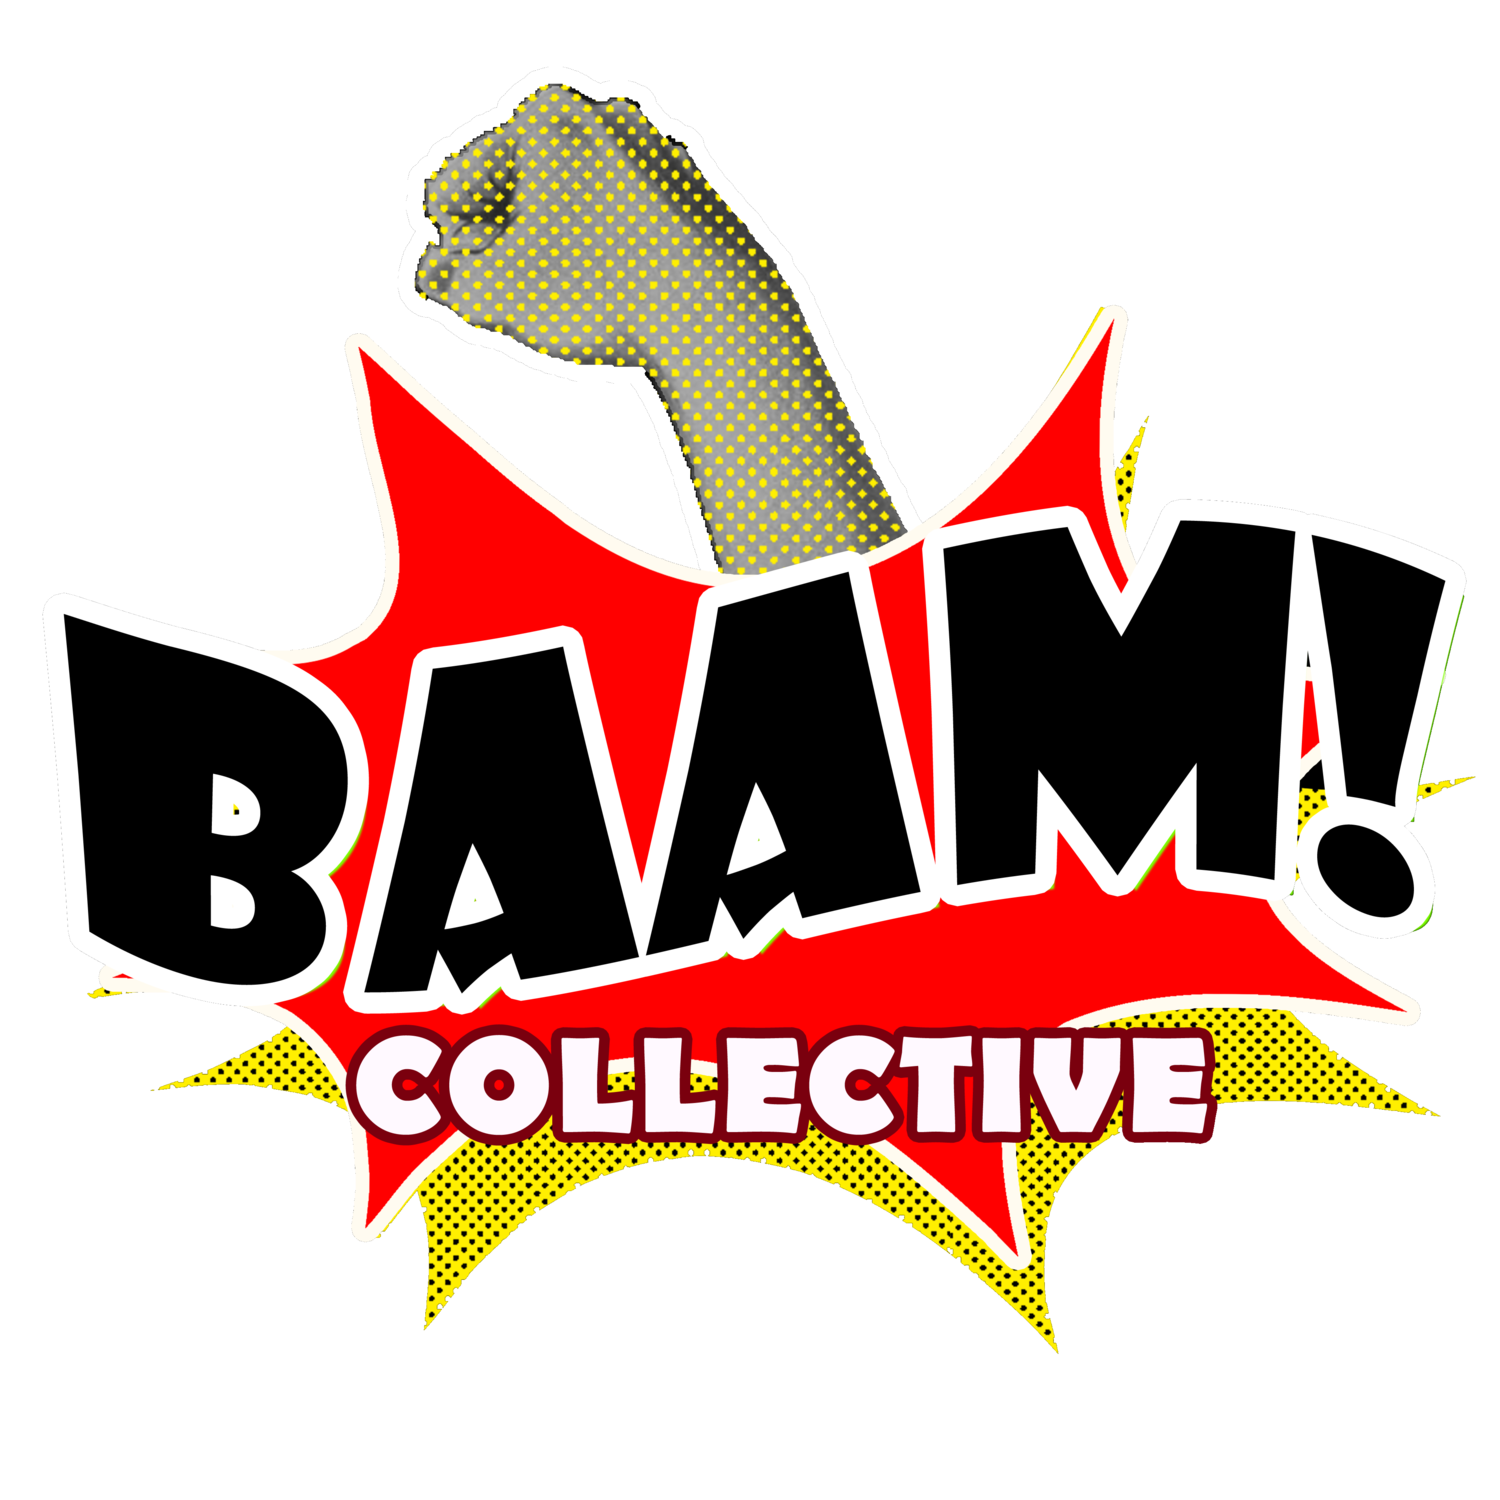 BAAM Collective